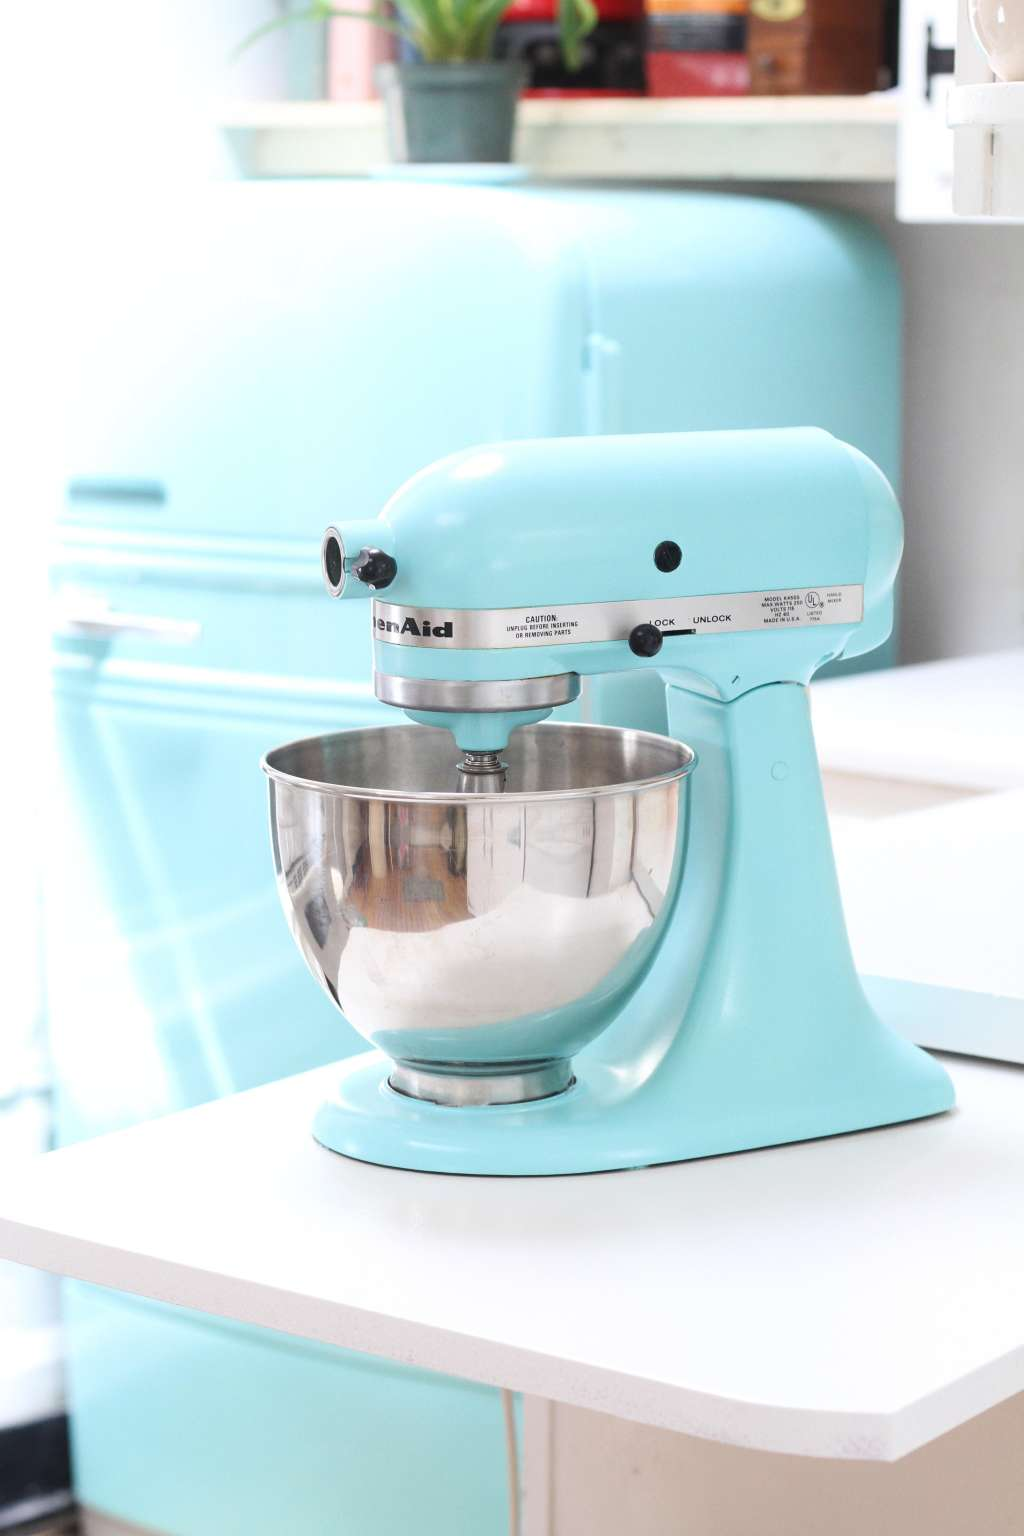 How To Paint a KitchenAid Mixer a New Color